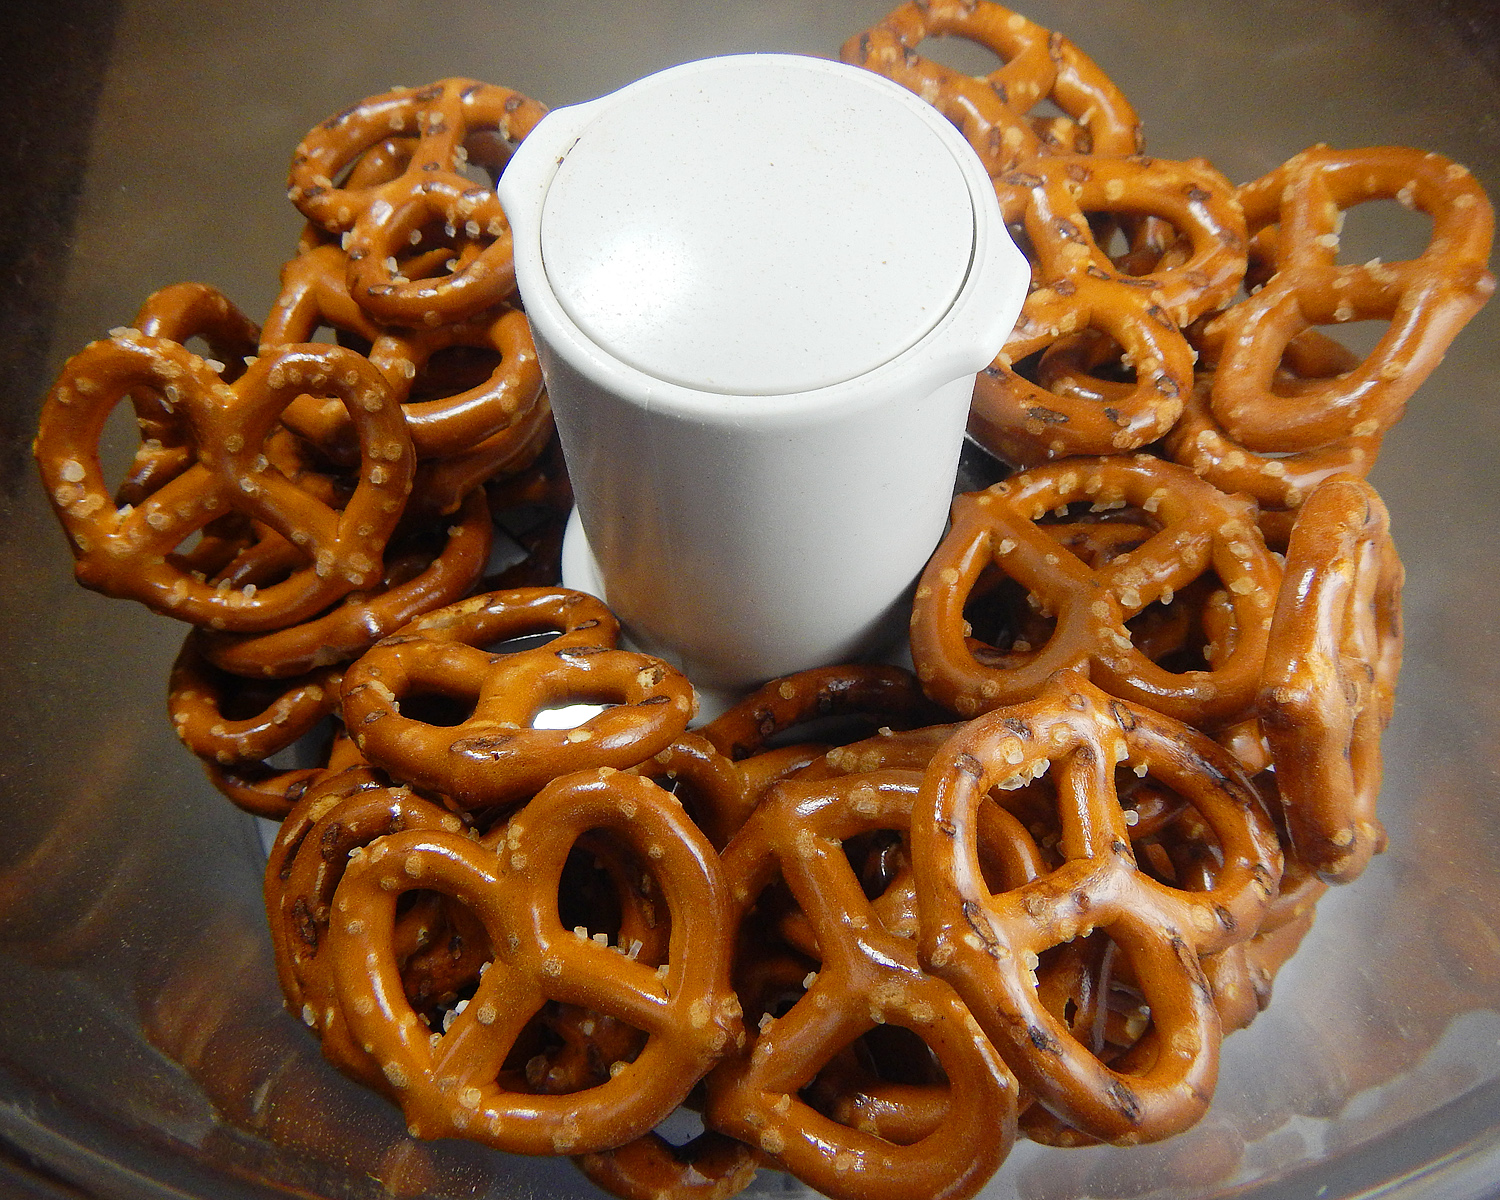 Pretzels in a food processor